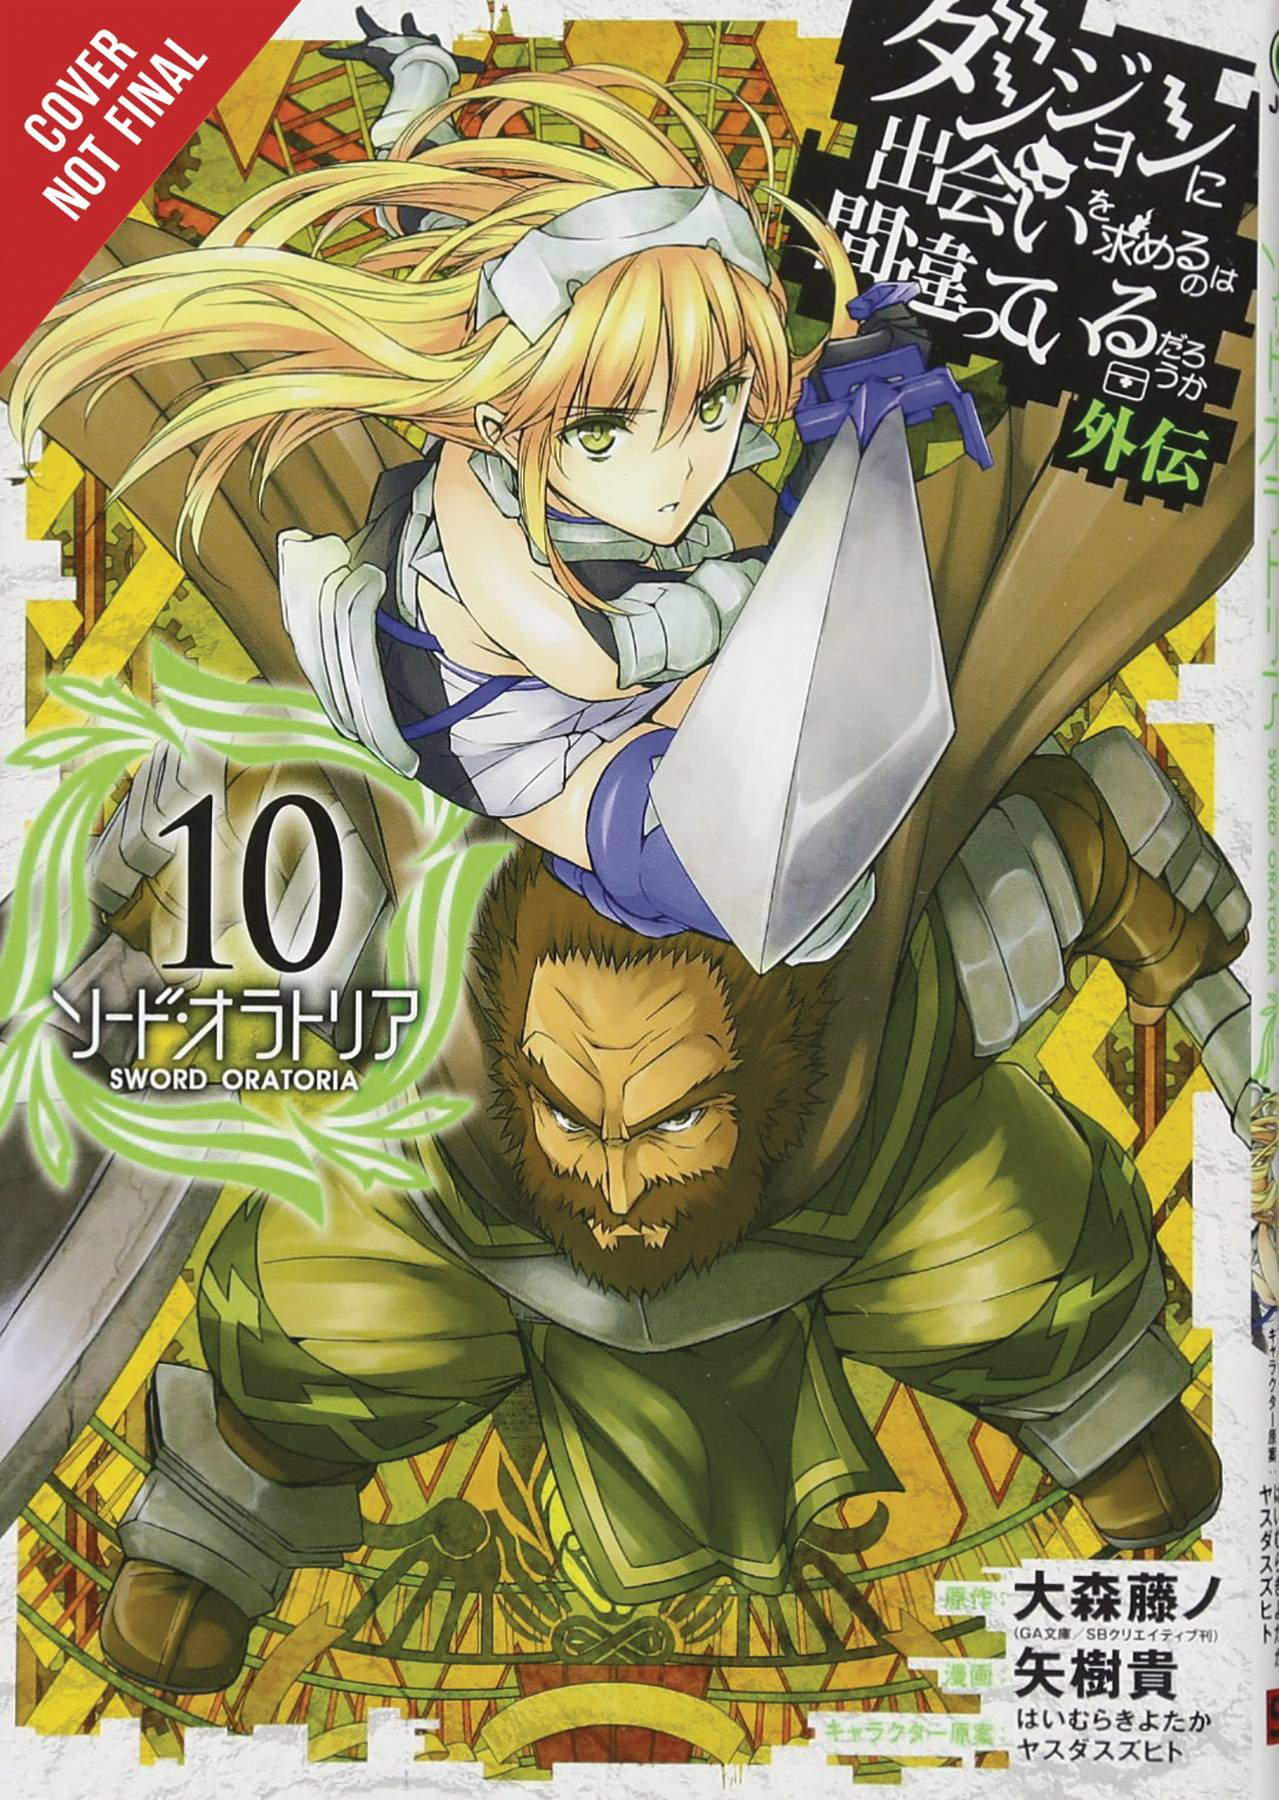 IS WRONG PICK UP GIRLS DUNGEON SWORD ORATORIA GN VOL 10